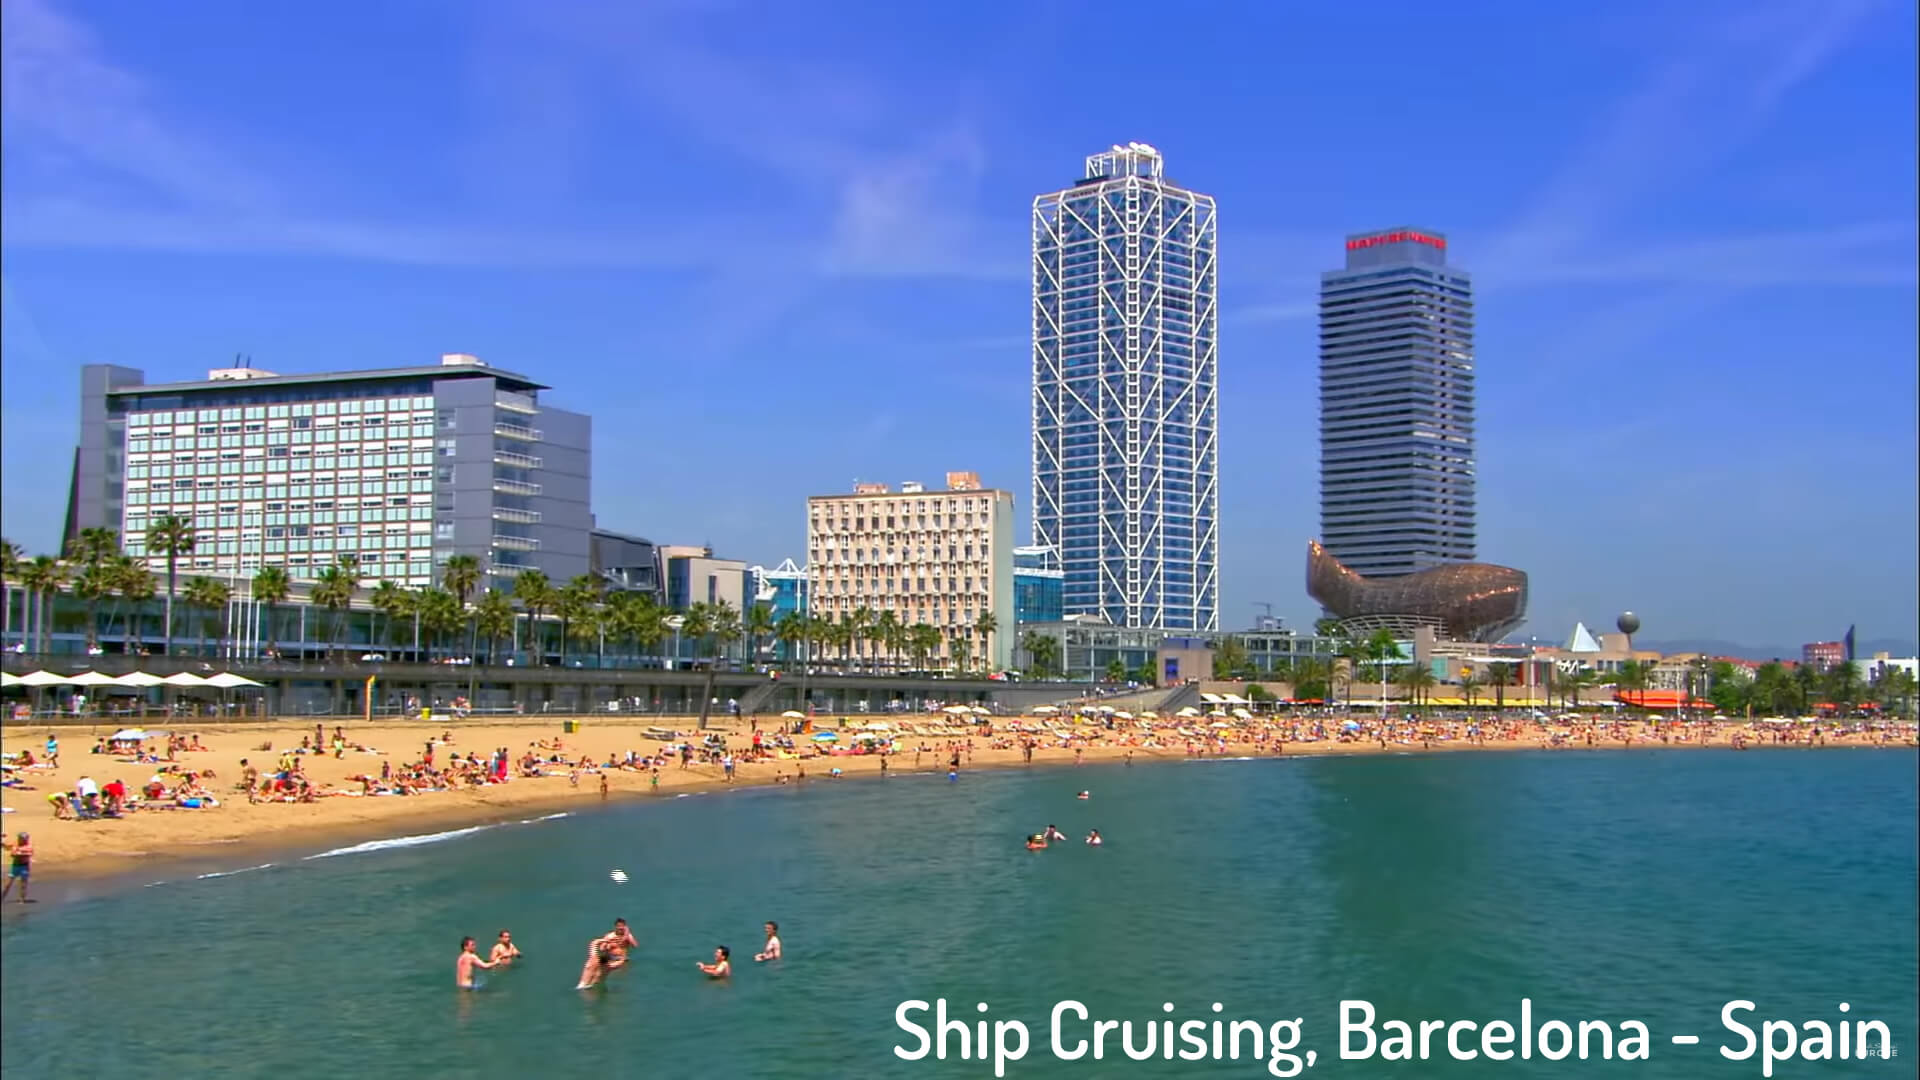 Ship Cruising, Barcelona - Spain